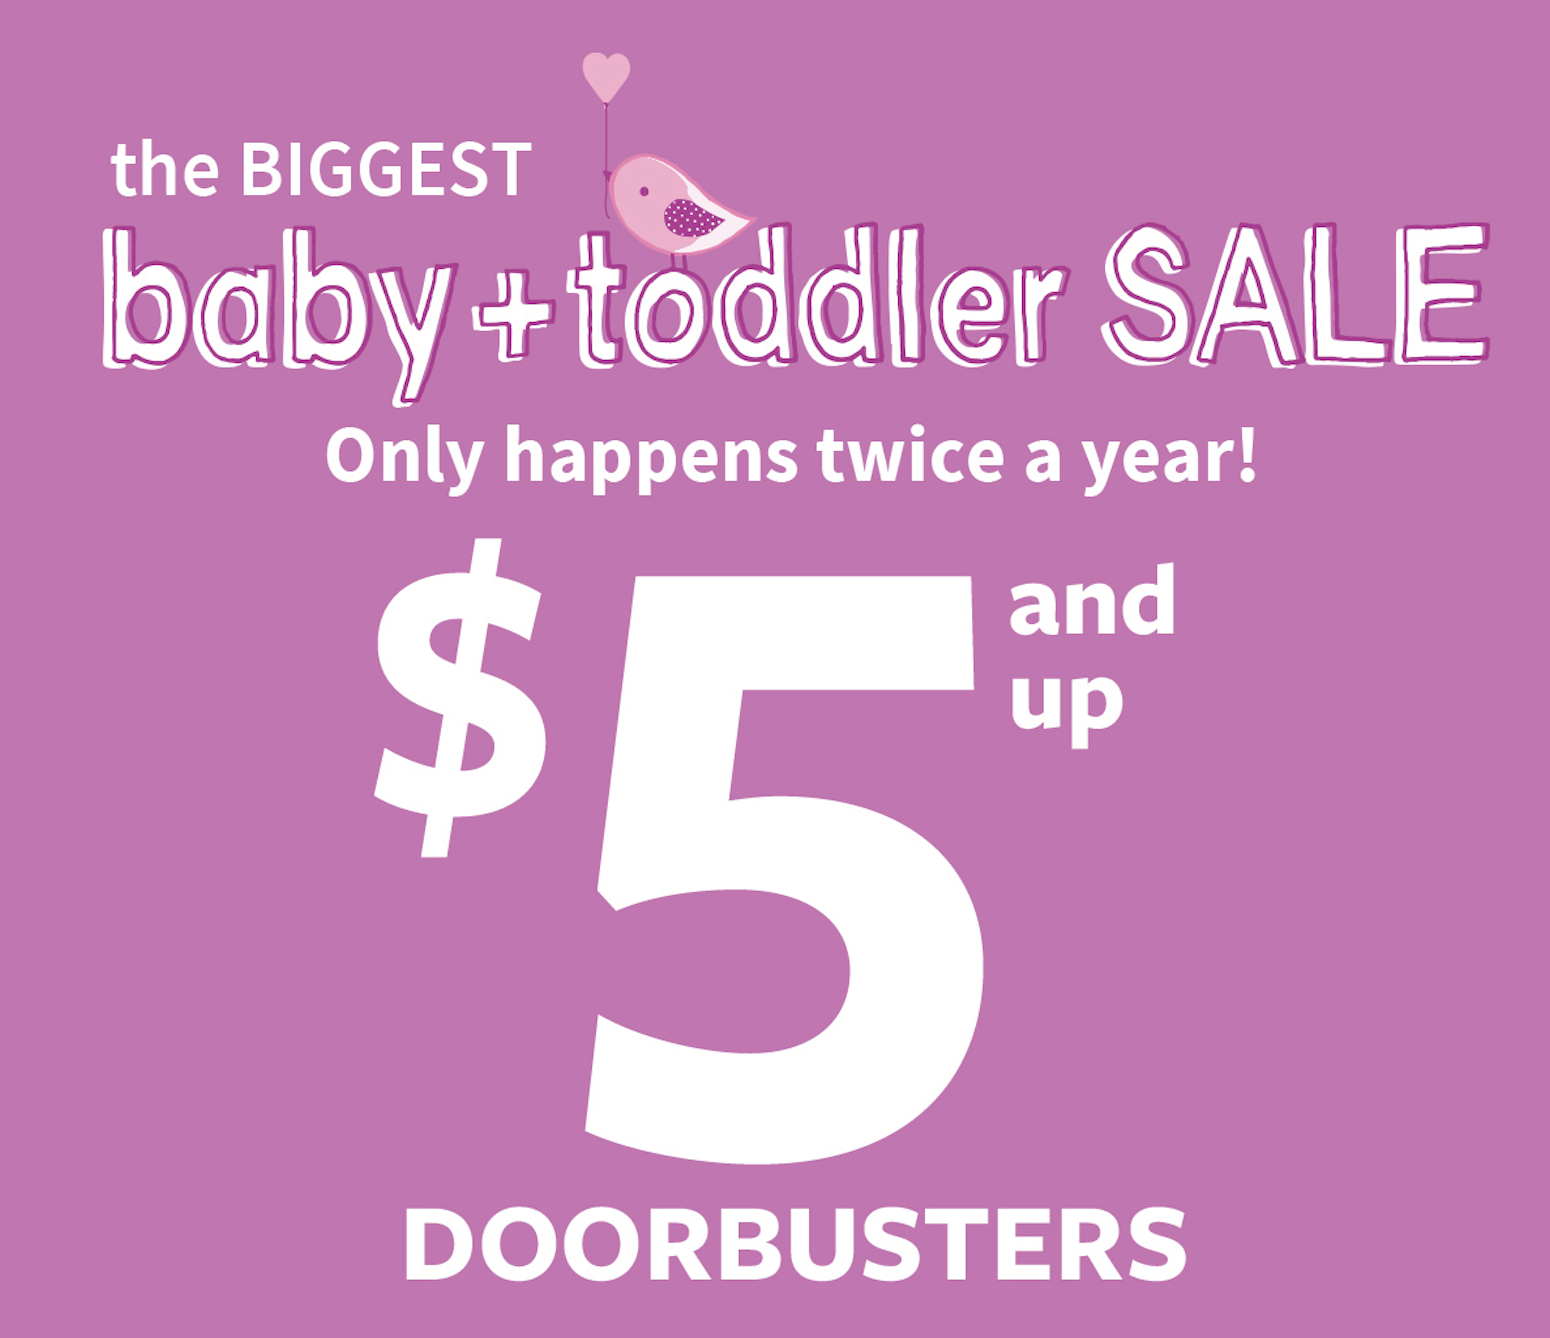 Carter's $5 and Up Baby Doorbusters